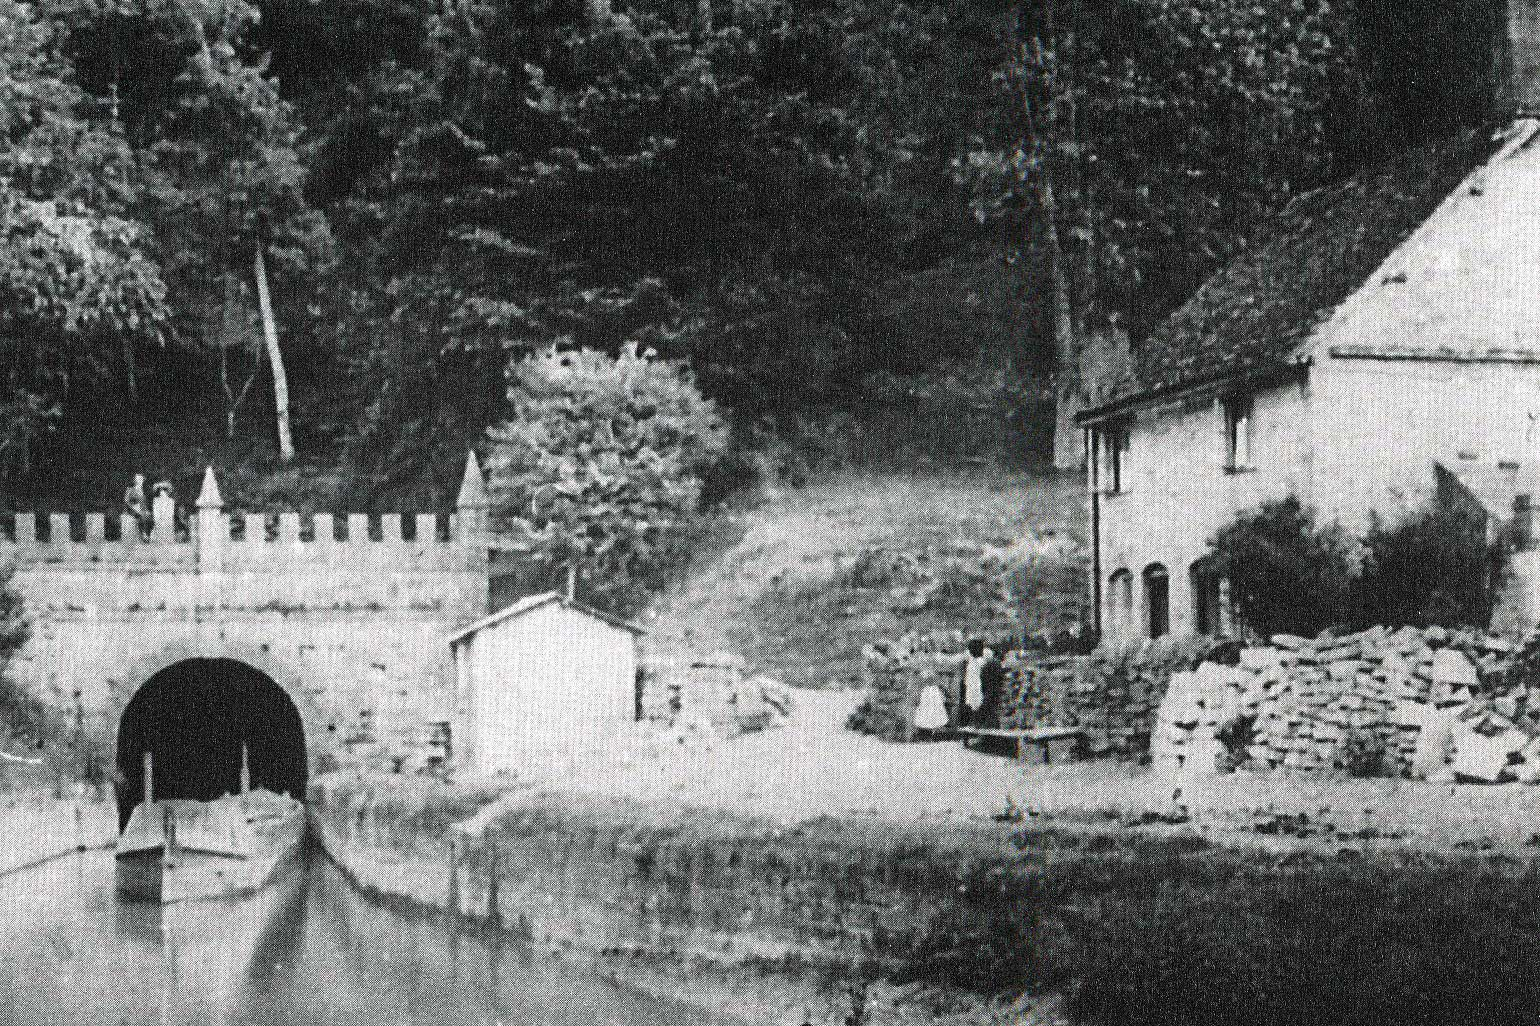 Daneway end of Sapperton Canal Tunnel c.1910. Note the low water level